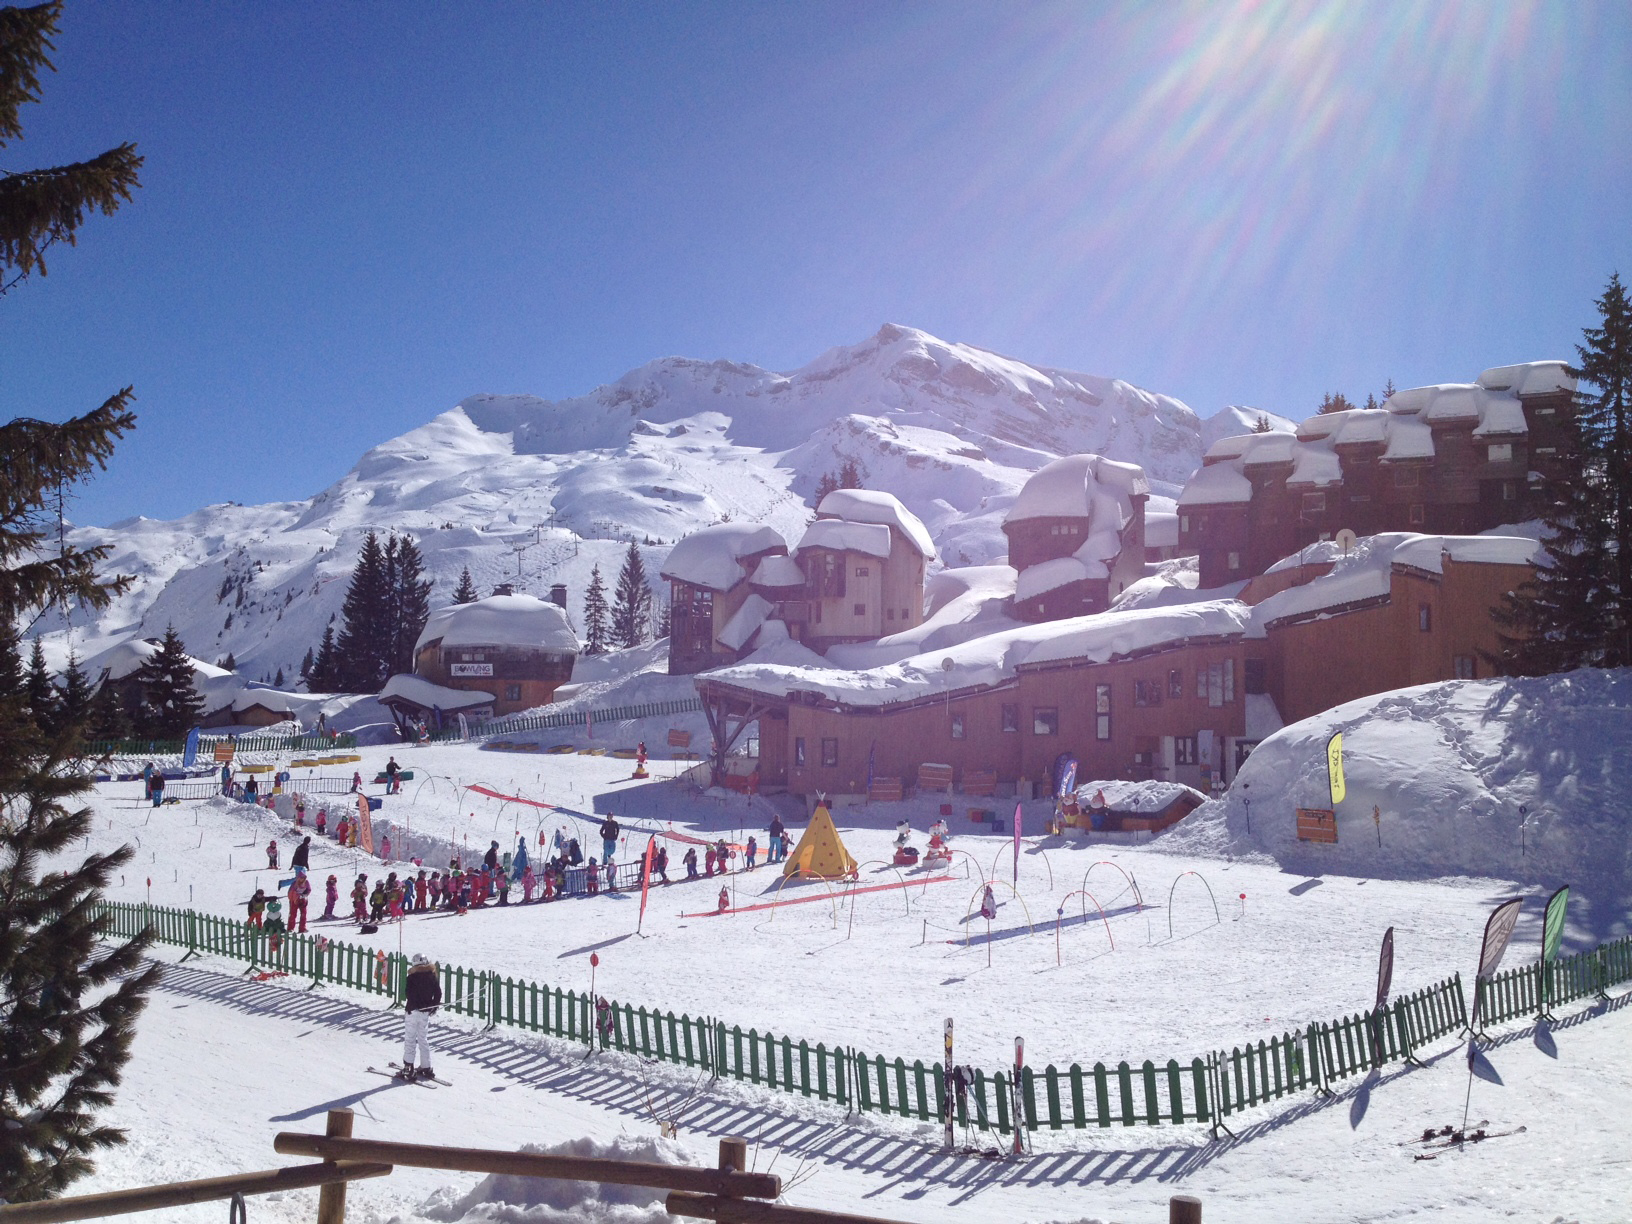 Location de ski Avoriaz